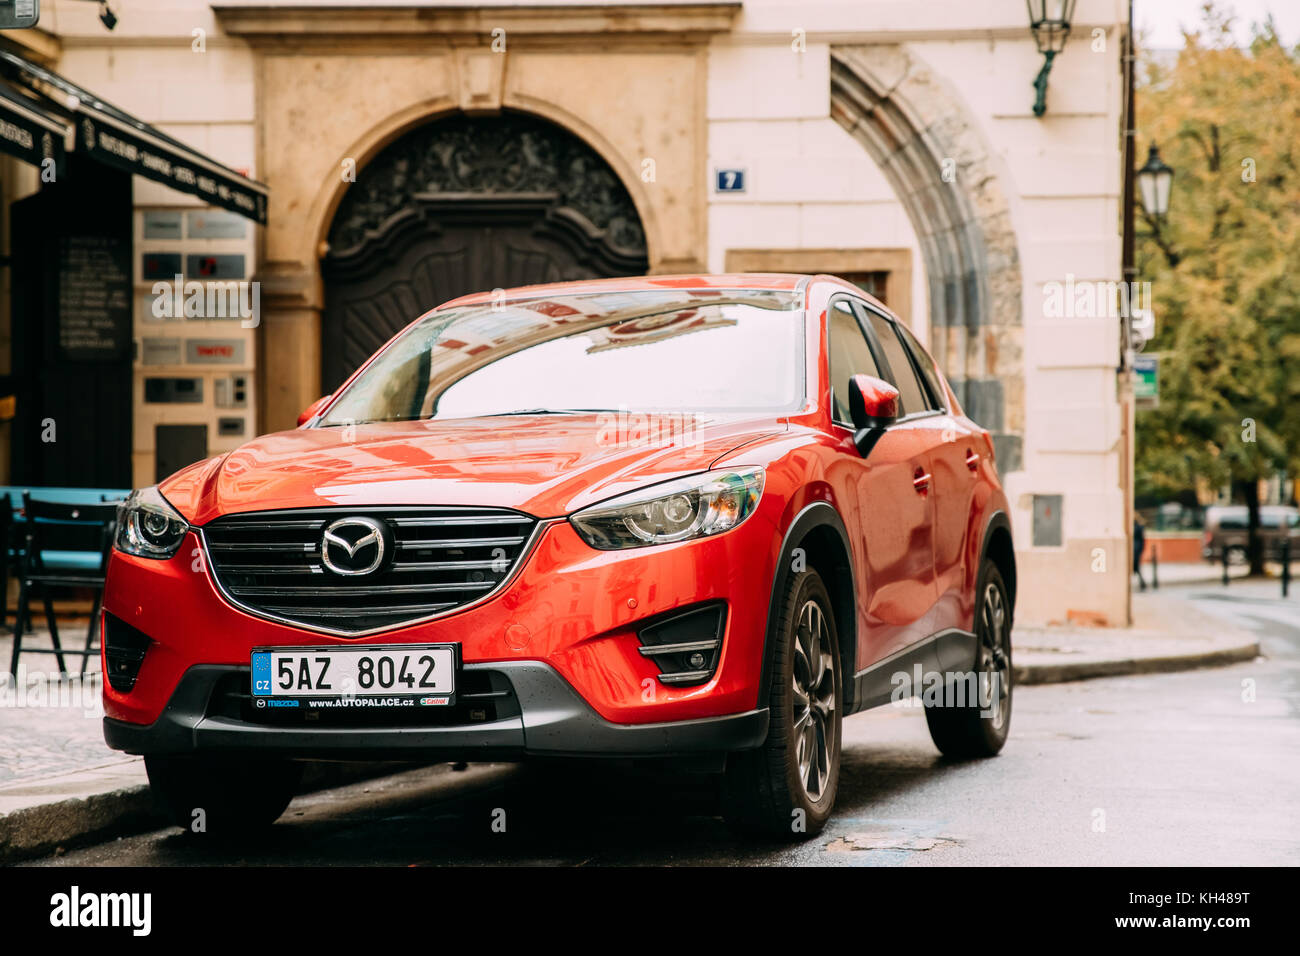 Prague, Czech Republic - September 24, 2017: Front View Of Red Facelift Mazda Cx-5 Car Parked In Street. Stock Photo